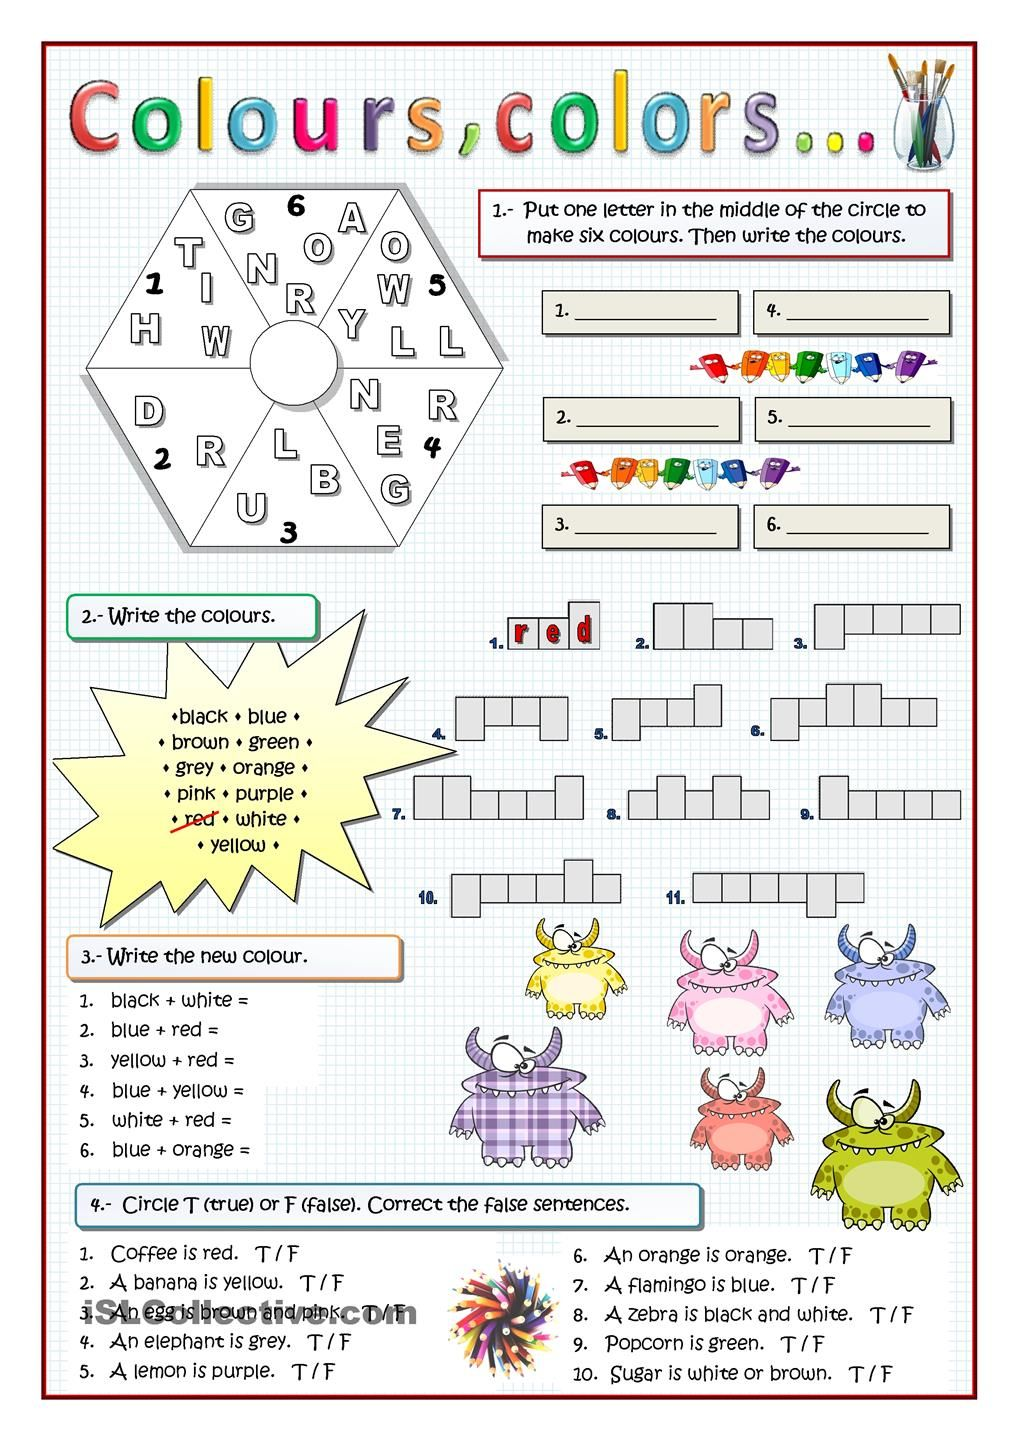 10 Fun Games for Reviewing English Numbers - Busy Teacher